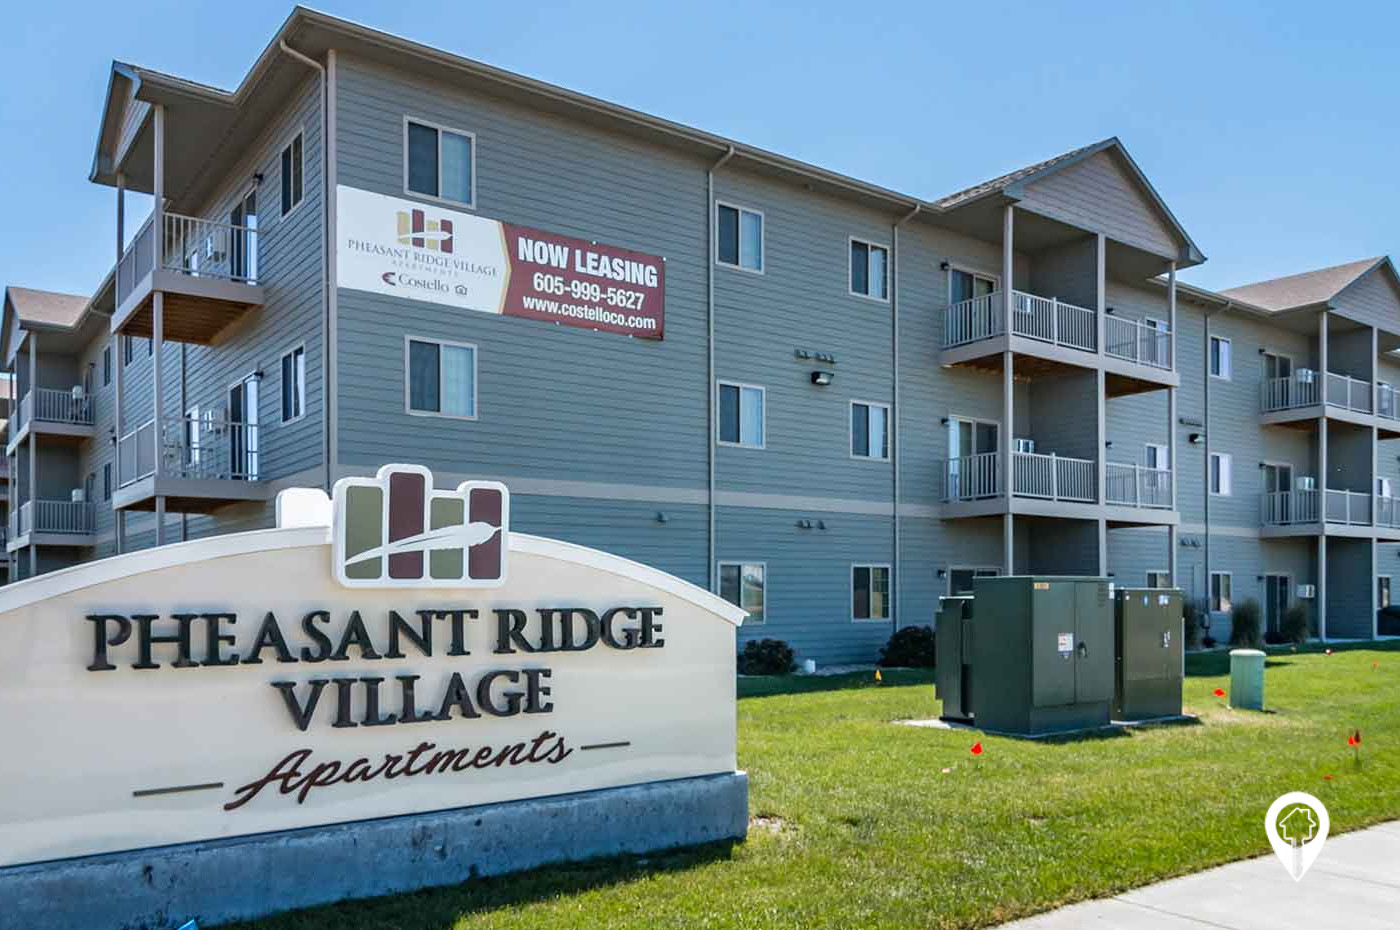 Pheasant Ridge Village Apartments